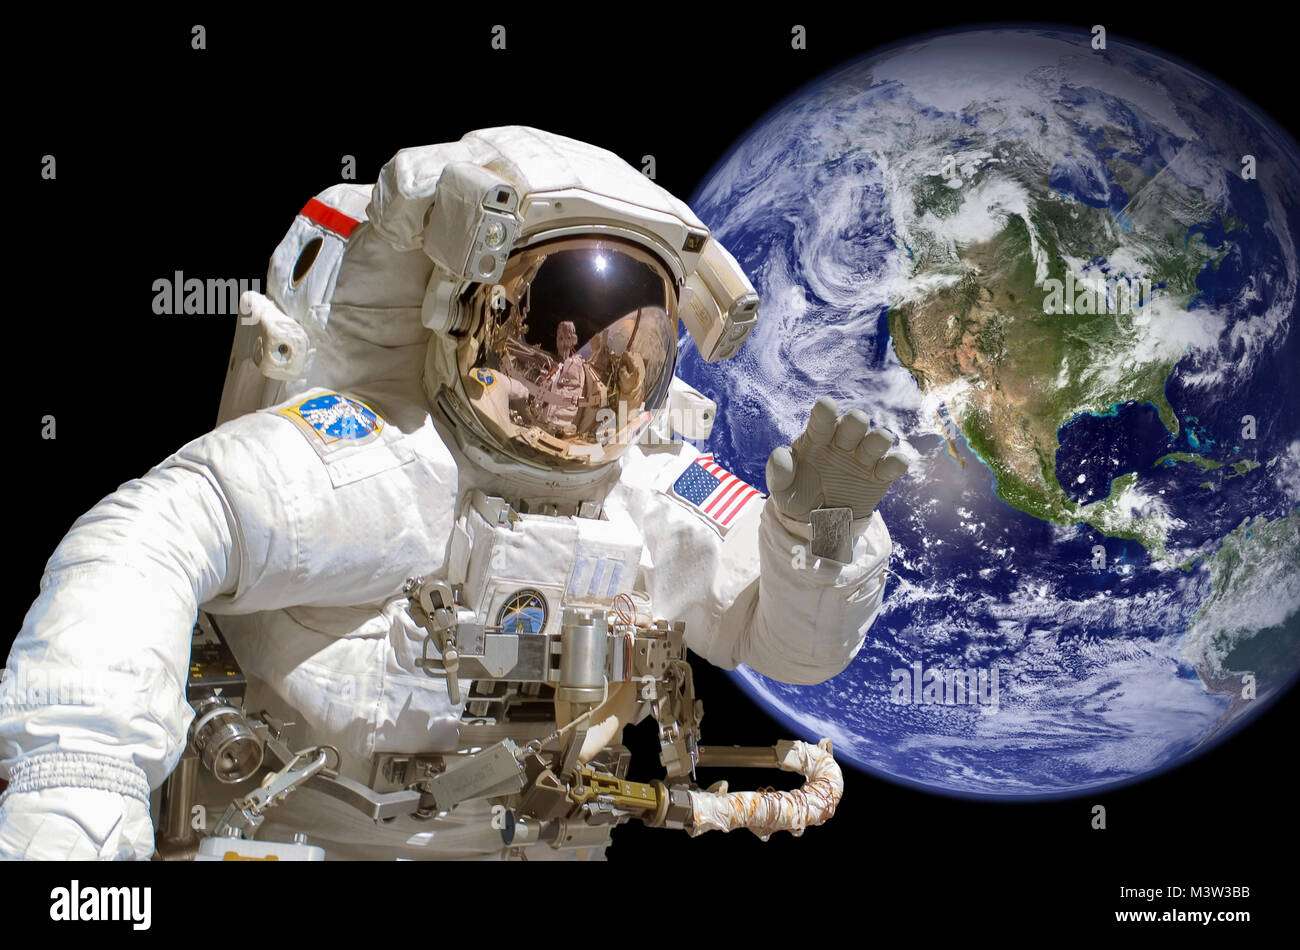 Astronaut space walk stock photos astronaut space walk for Outer space leicester